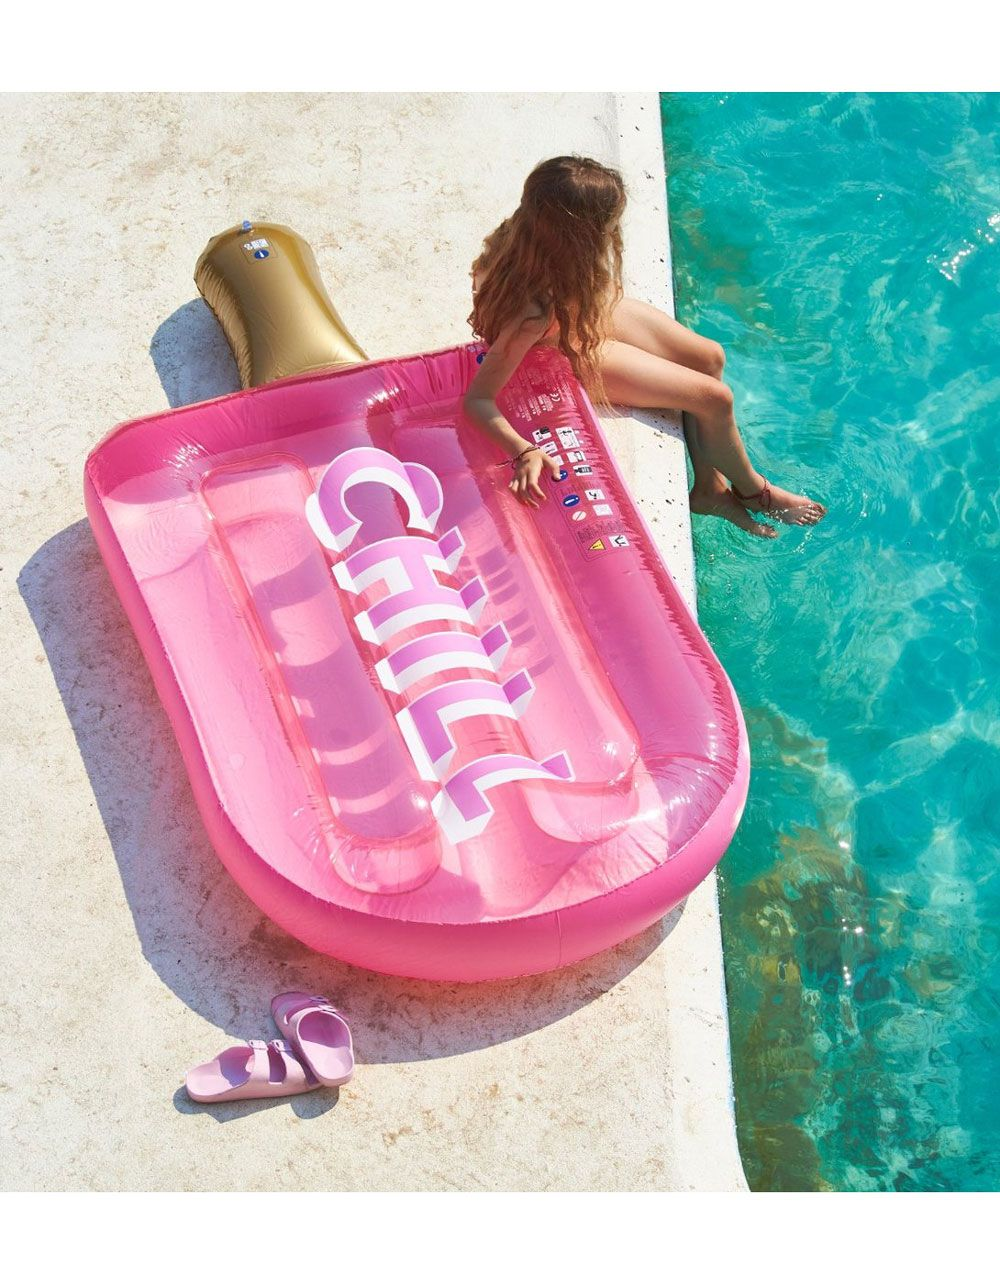 Sunnylife Chill Ice Lolly Float Pink S0lliecy Cool Pool Floats Pool Floaties Pool Floats For Kids